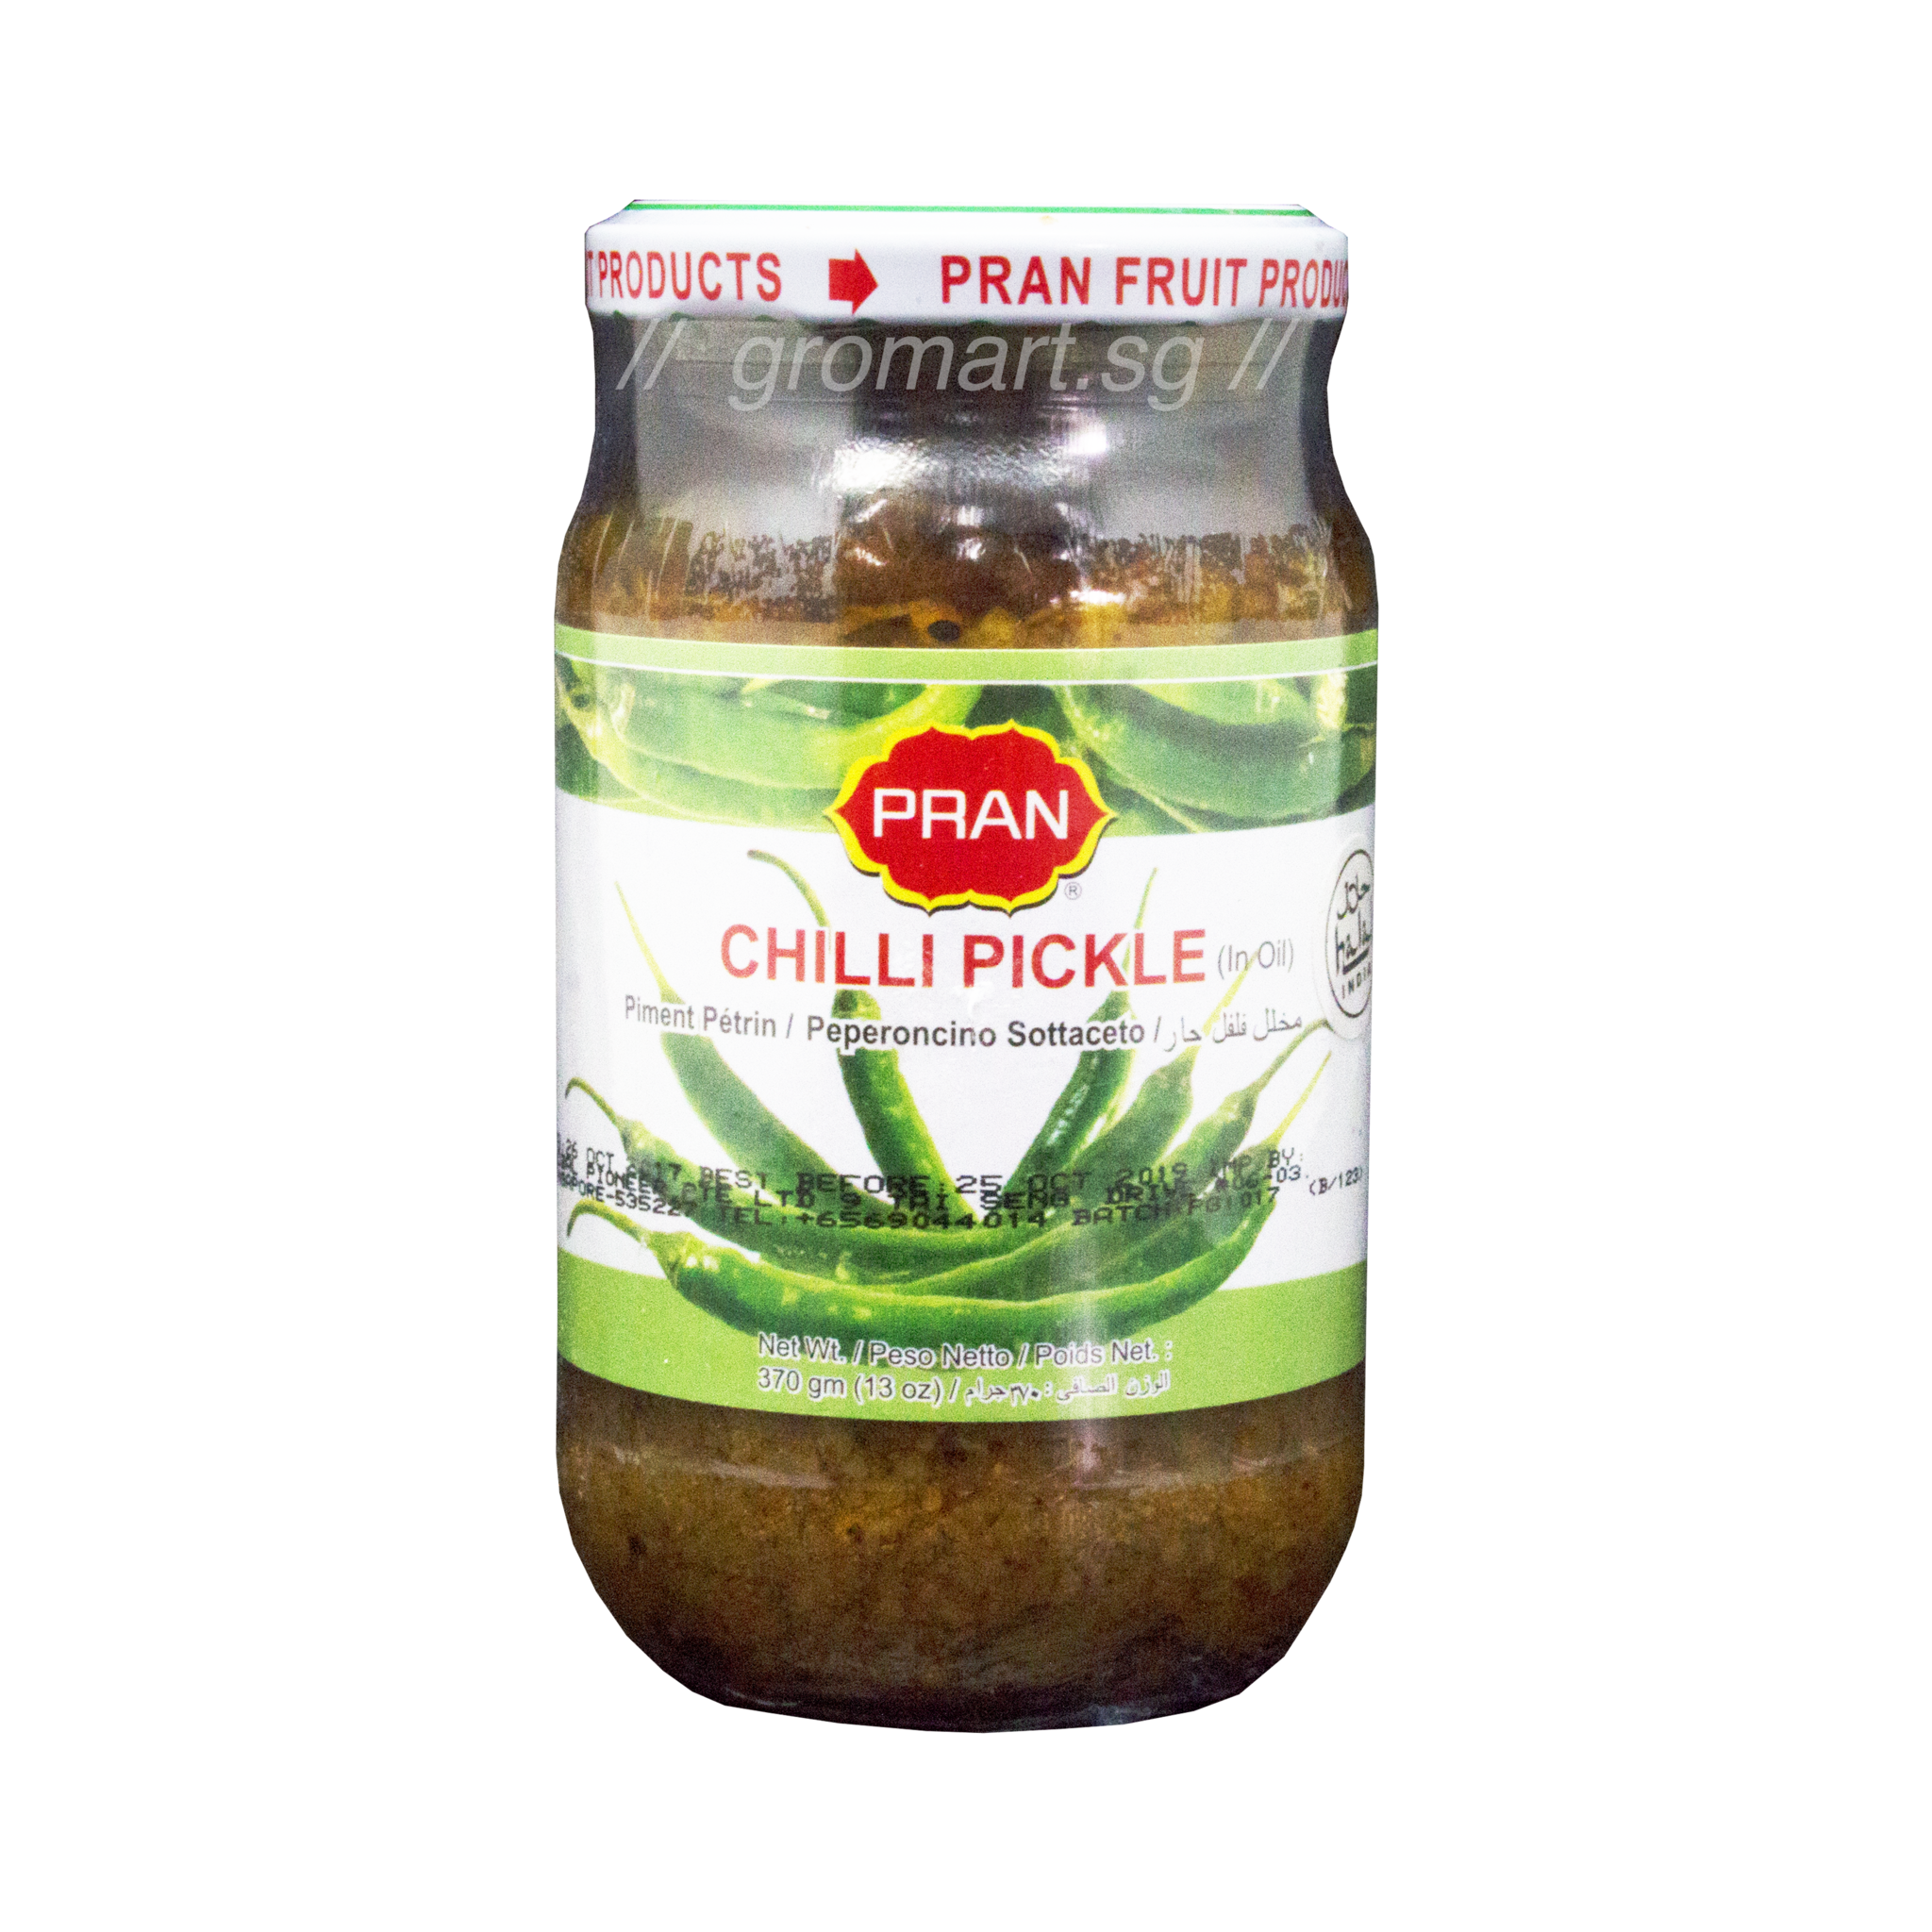 Online Grocery Delivery Pran Chilli Pickle - 13 Oz